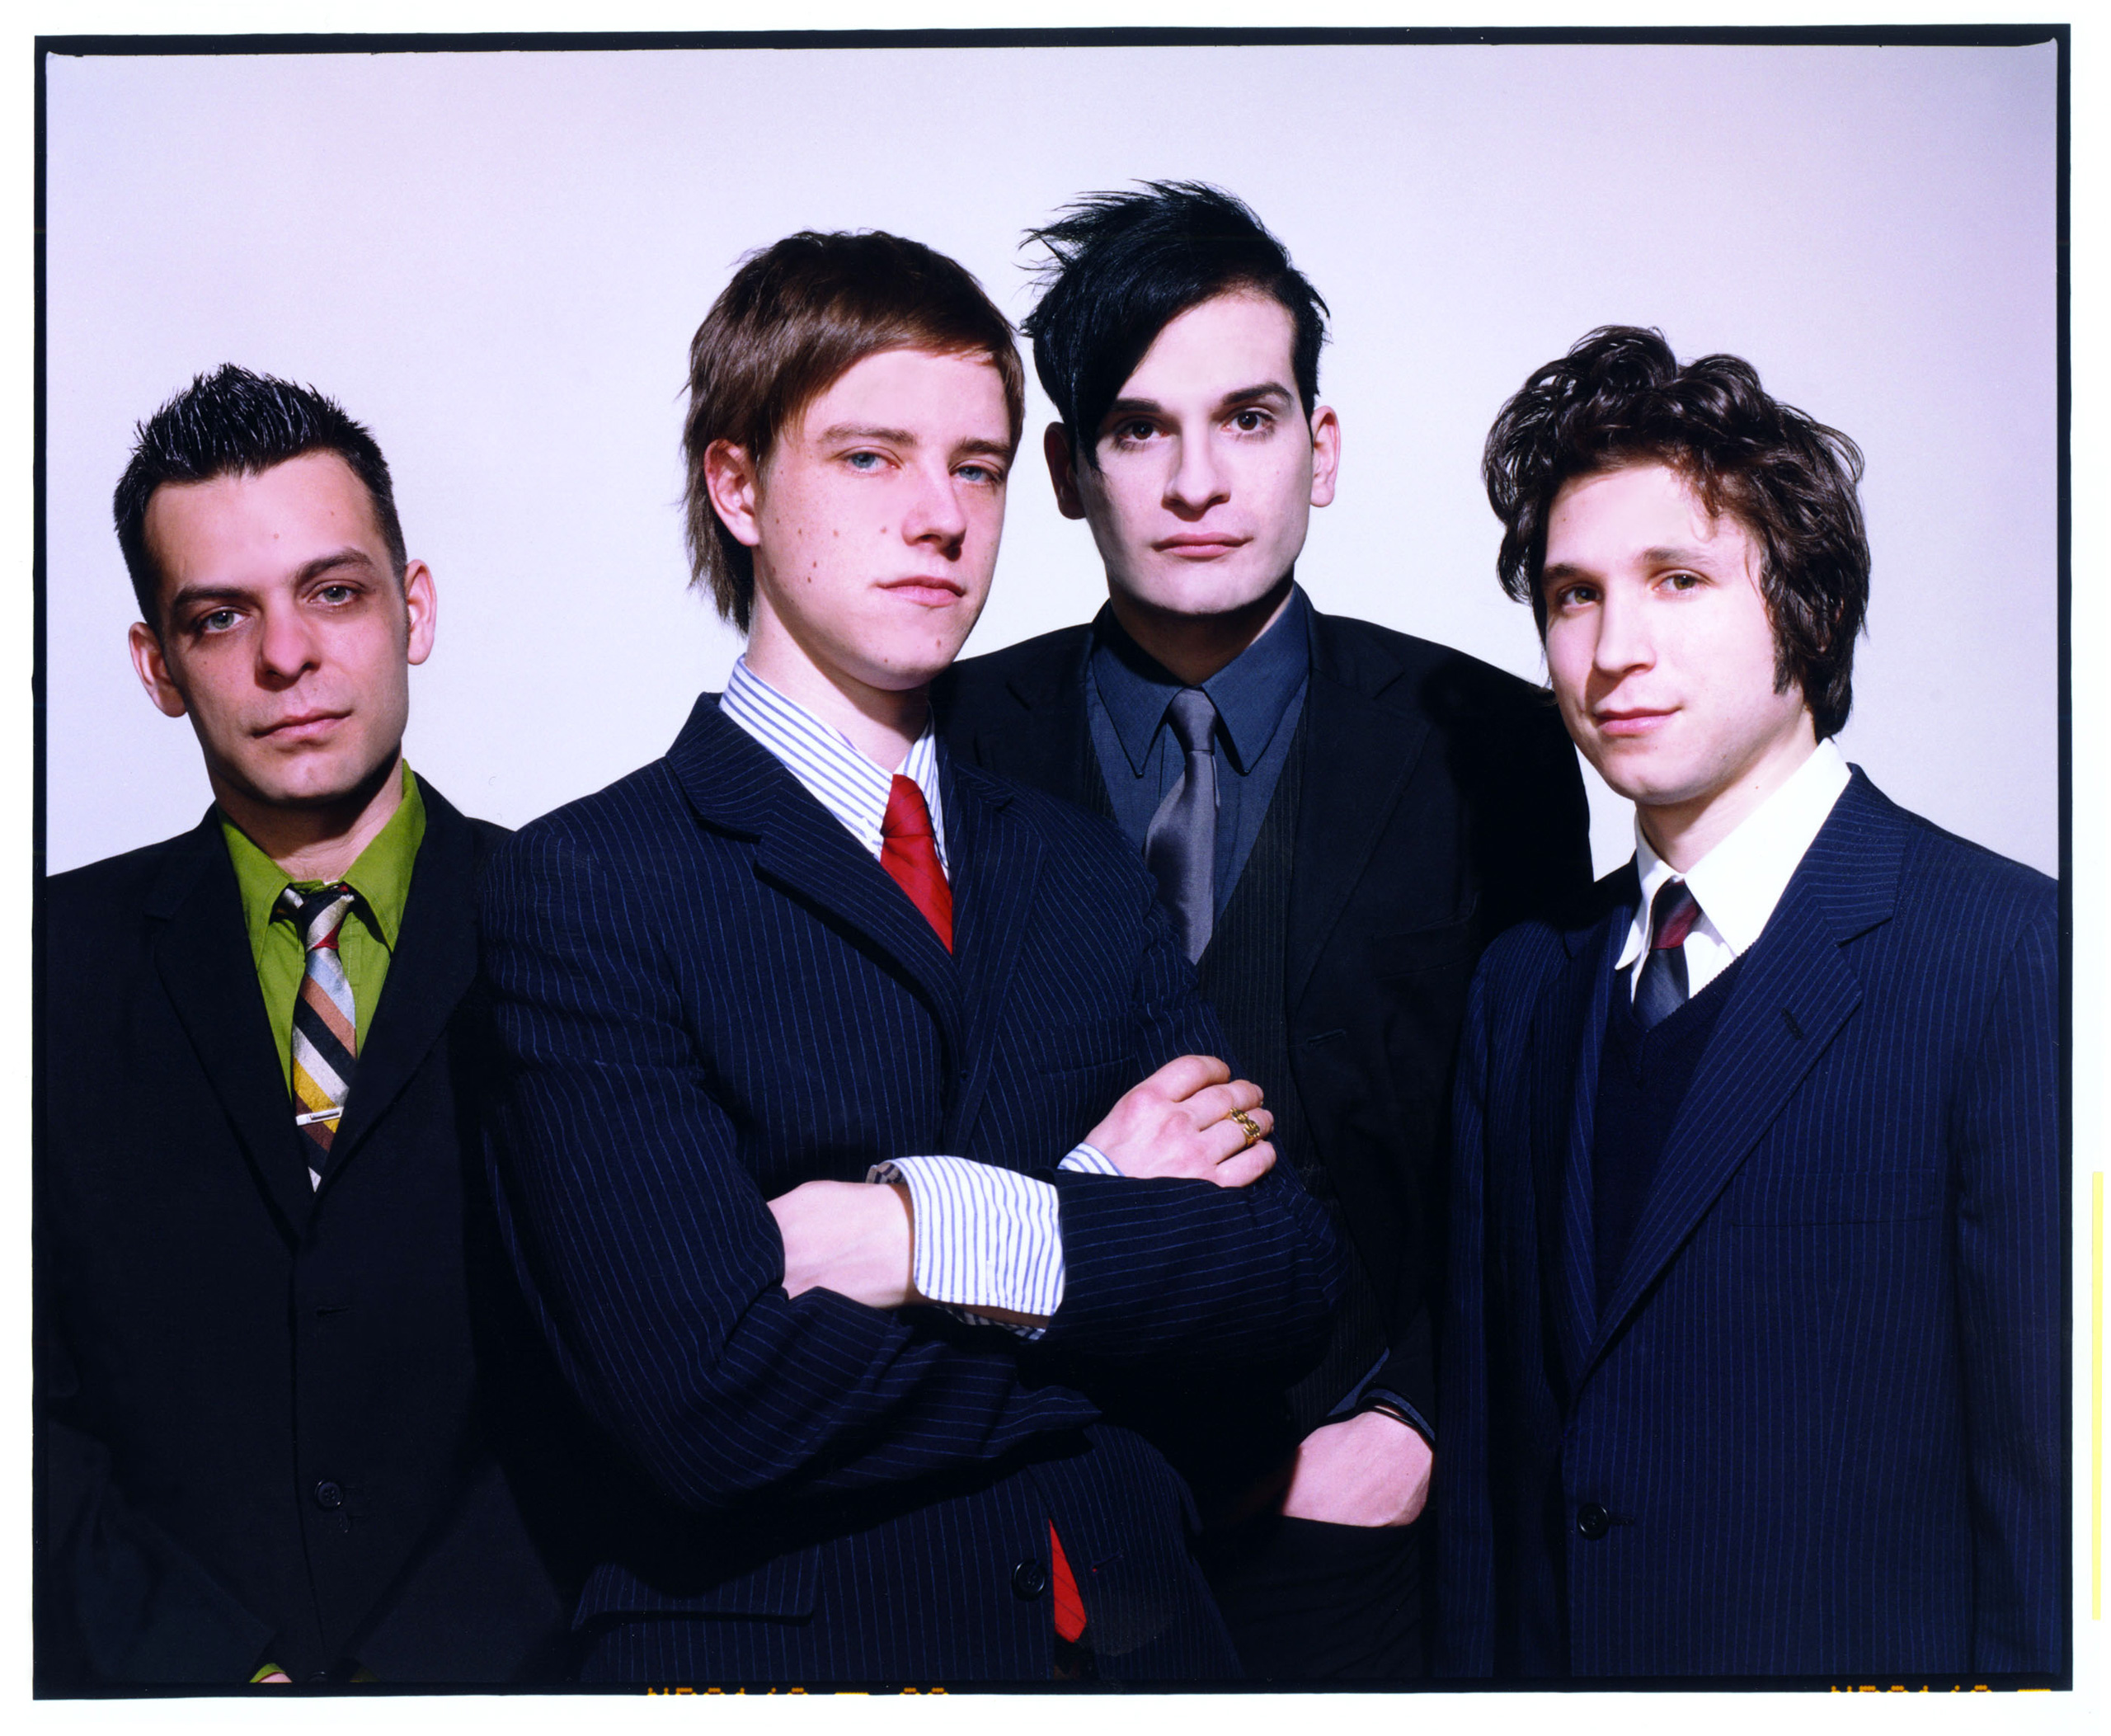 interpol - photo #32